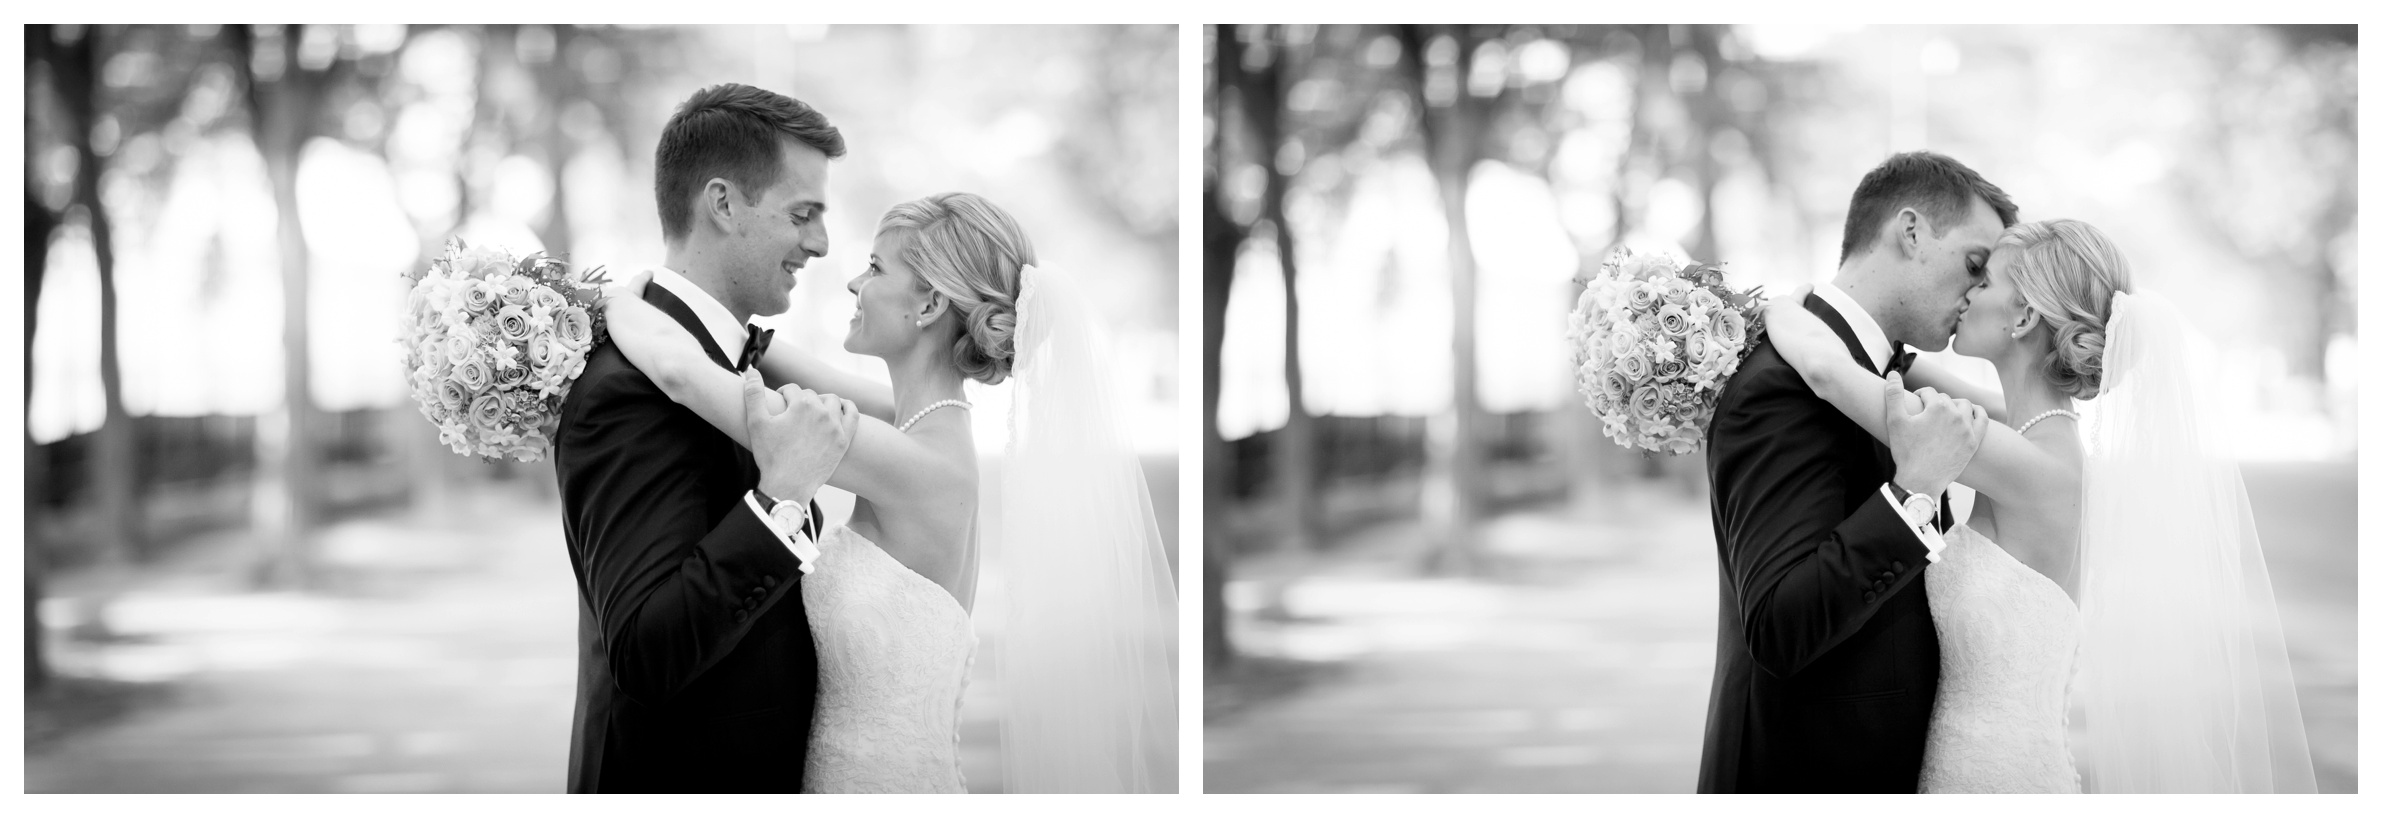 wedding-photo-chicago-skyline